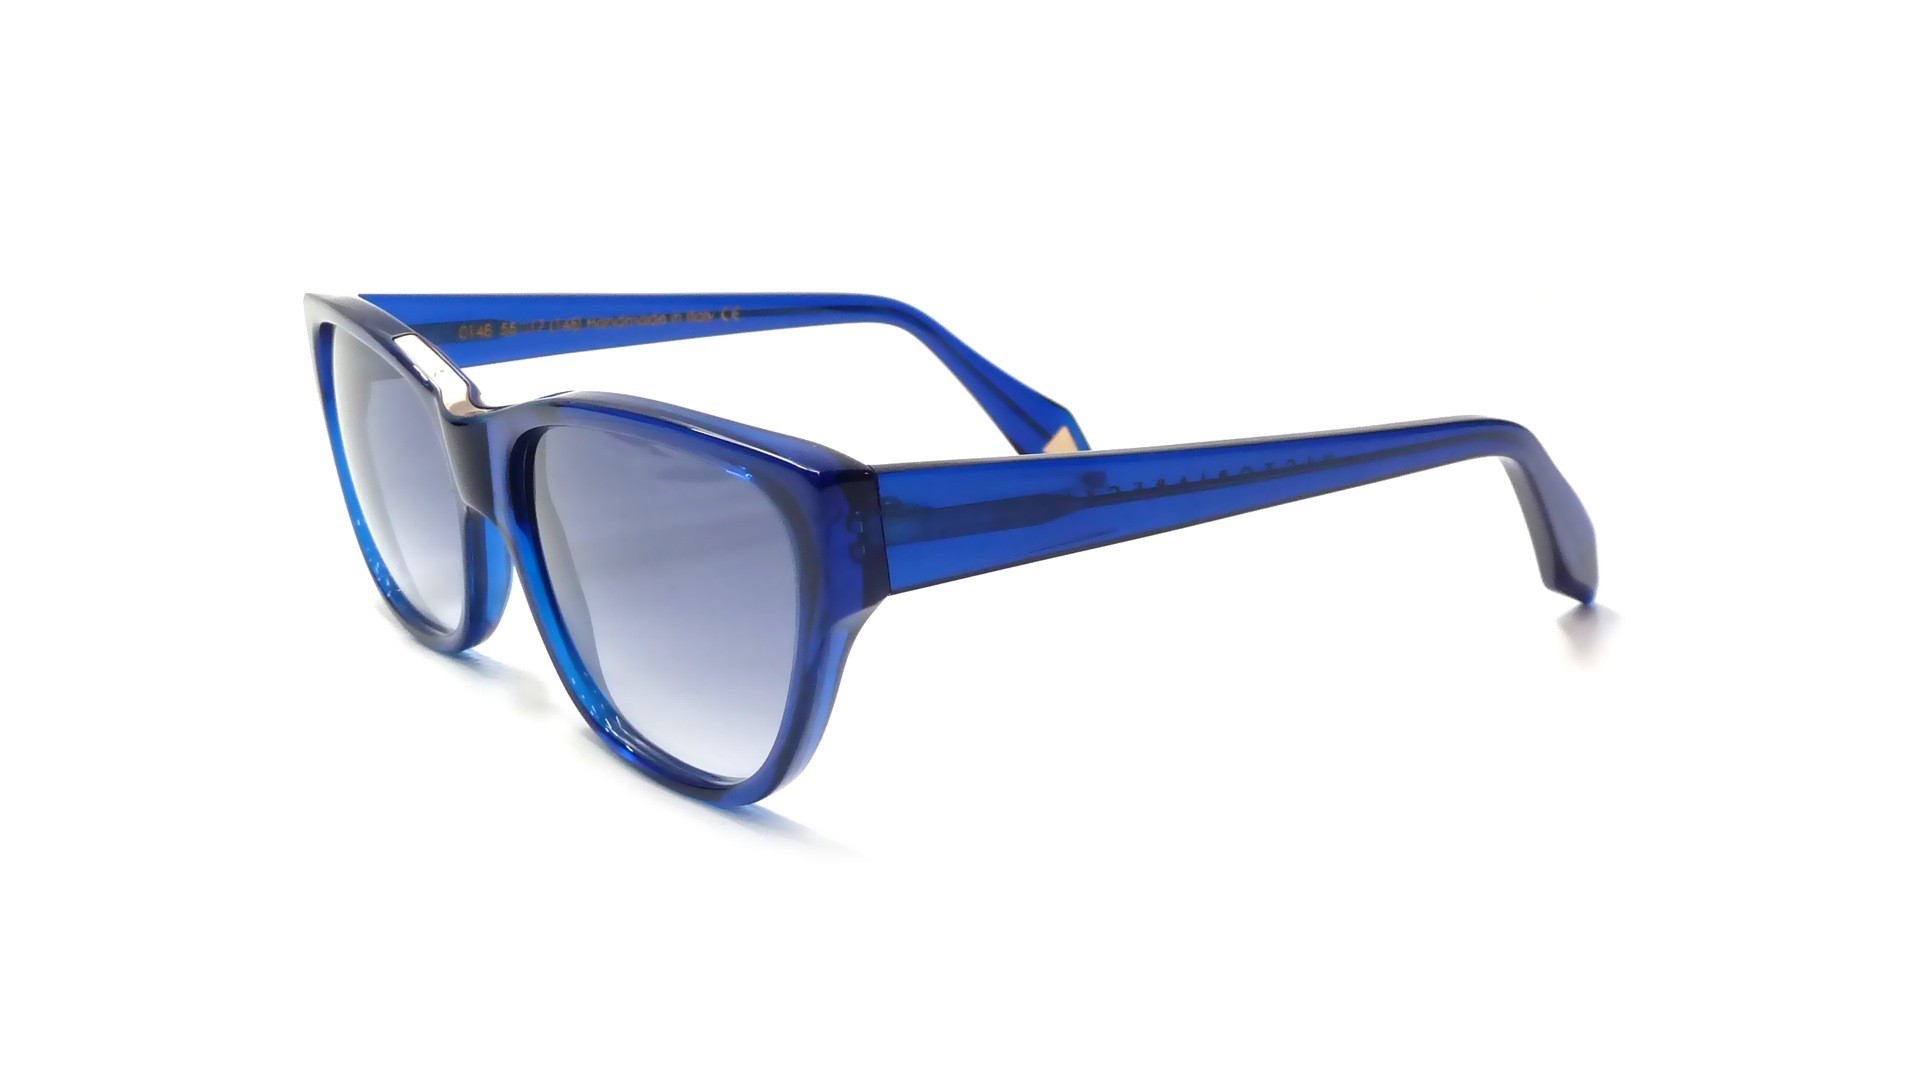 Glasses Frames Recto Or Quiapo : Sun glasses Victoria Beckham Unswept Inlay VB0148 Blue ...